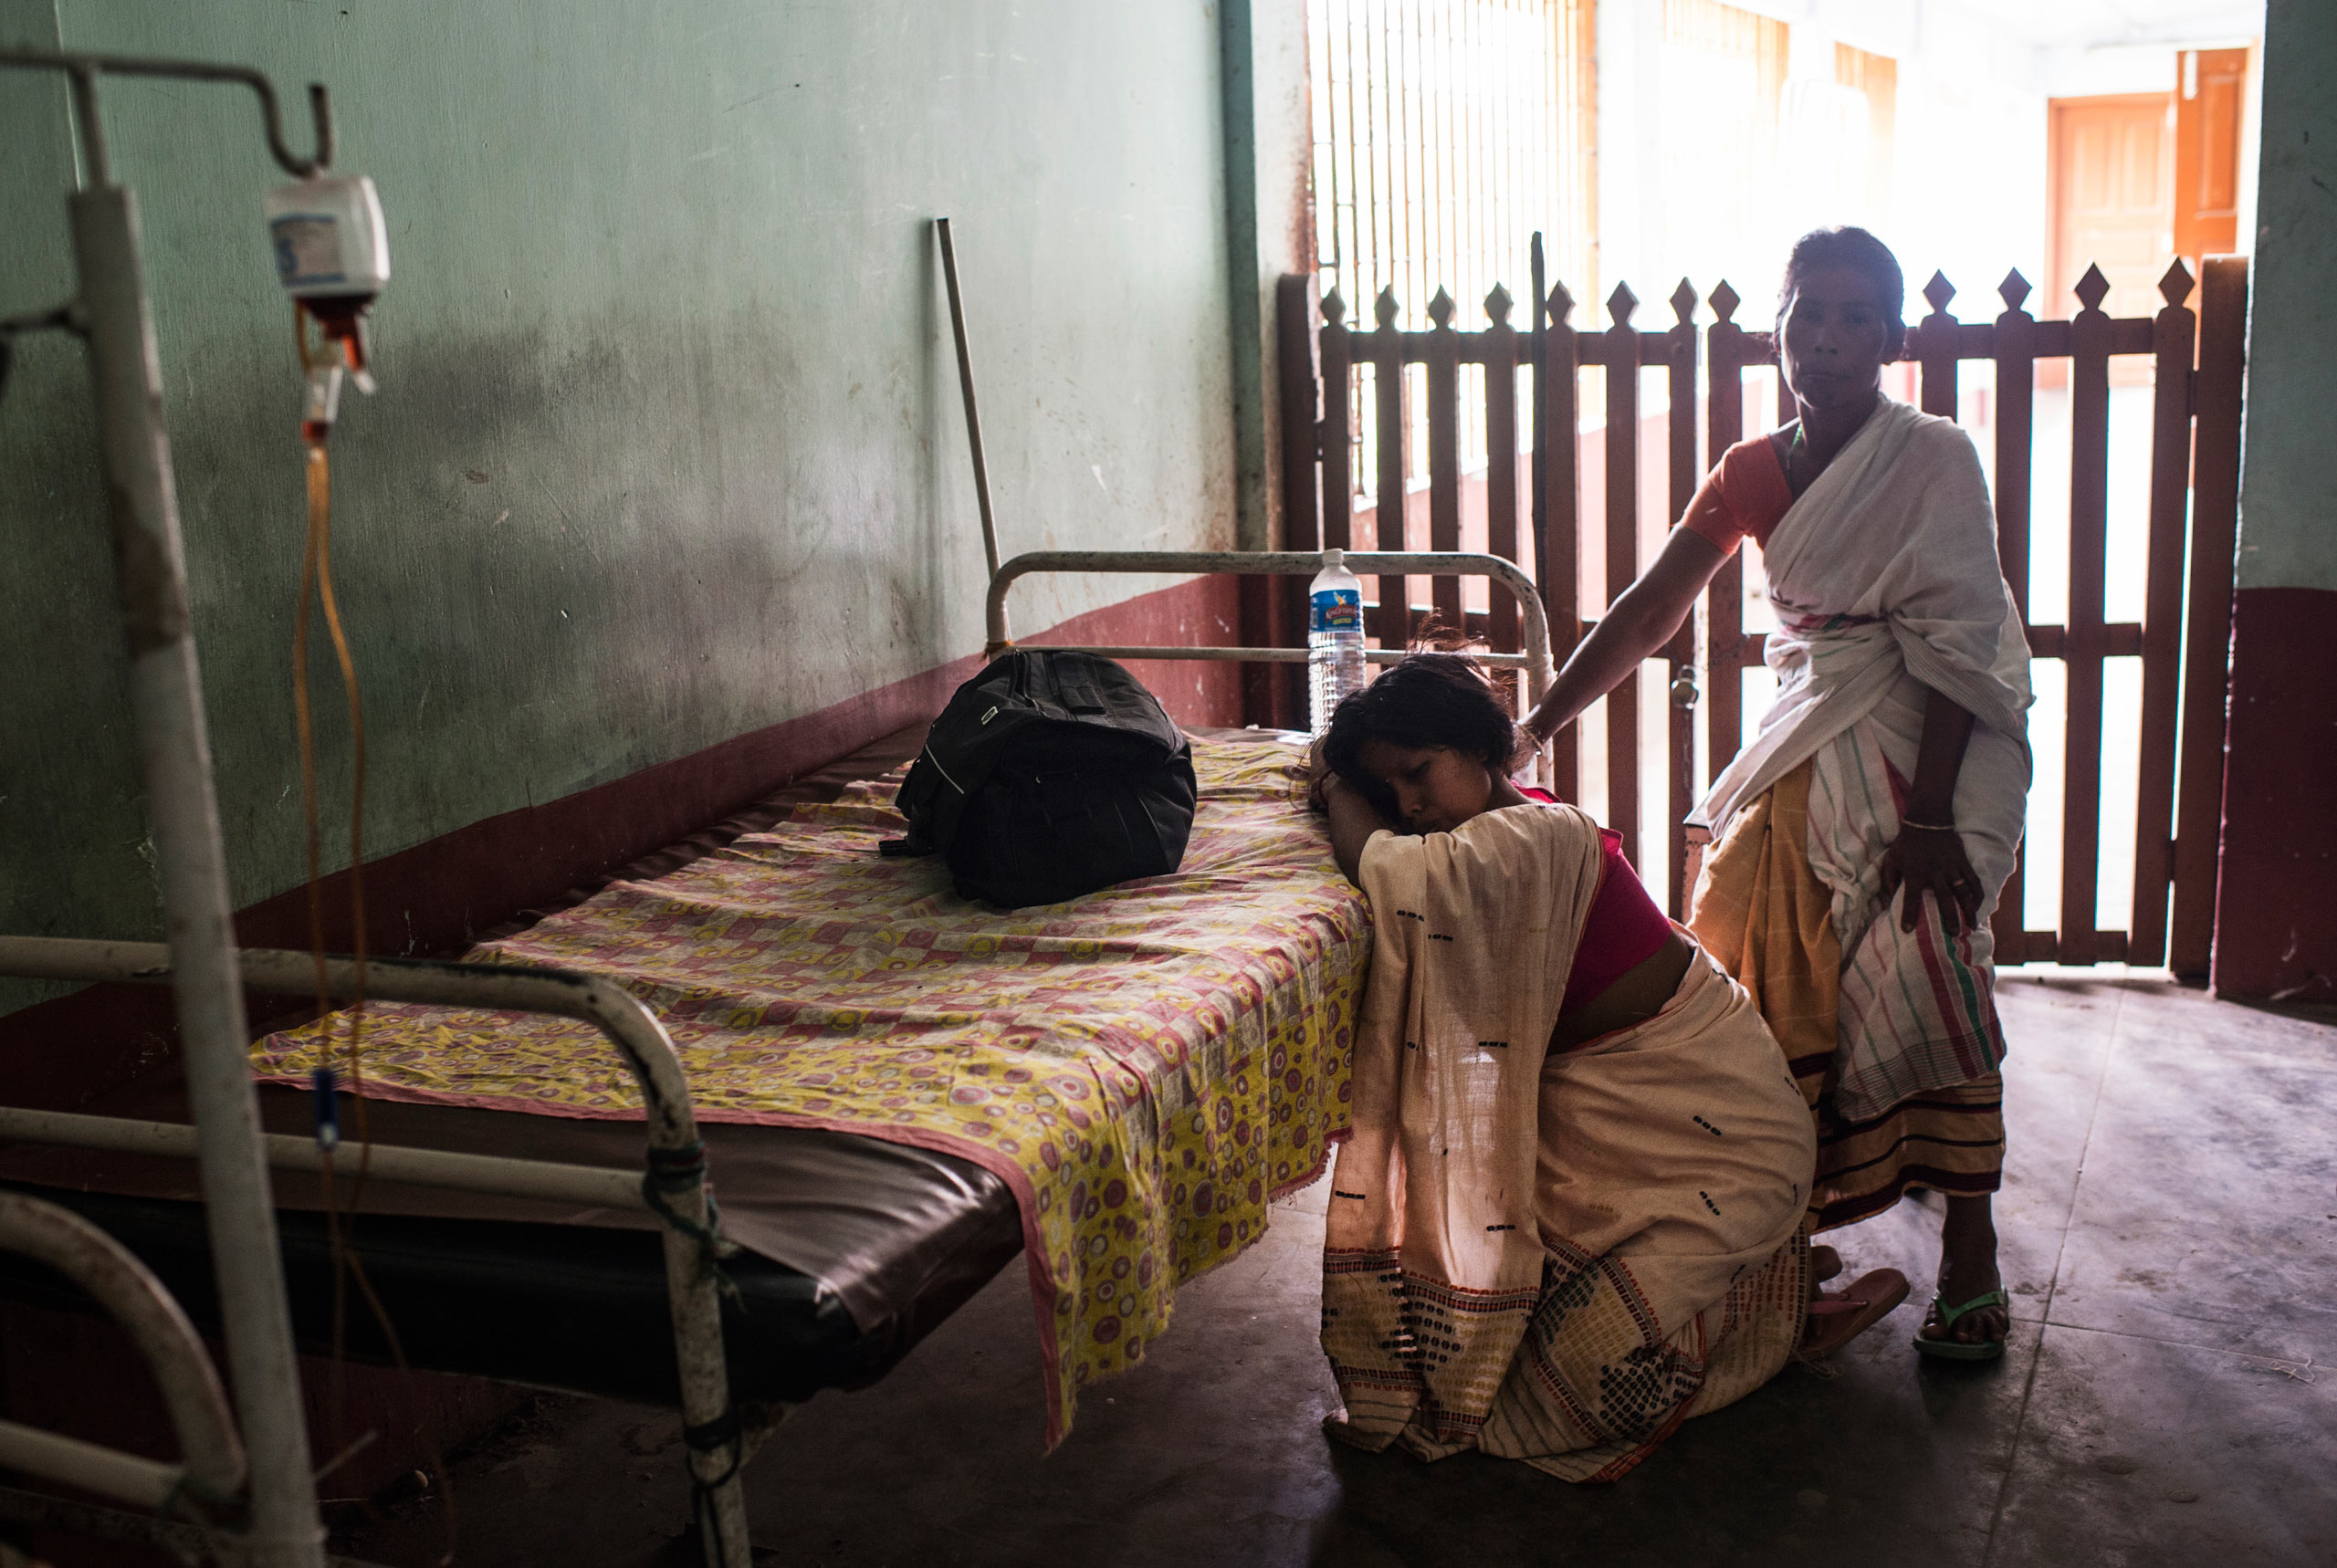 A young woman kneels with labor pains in the hallway of the maternity ward at the Dhekiajuli Community Health Center in Assam, India. April 8, 2015.